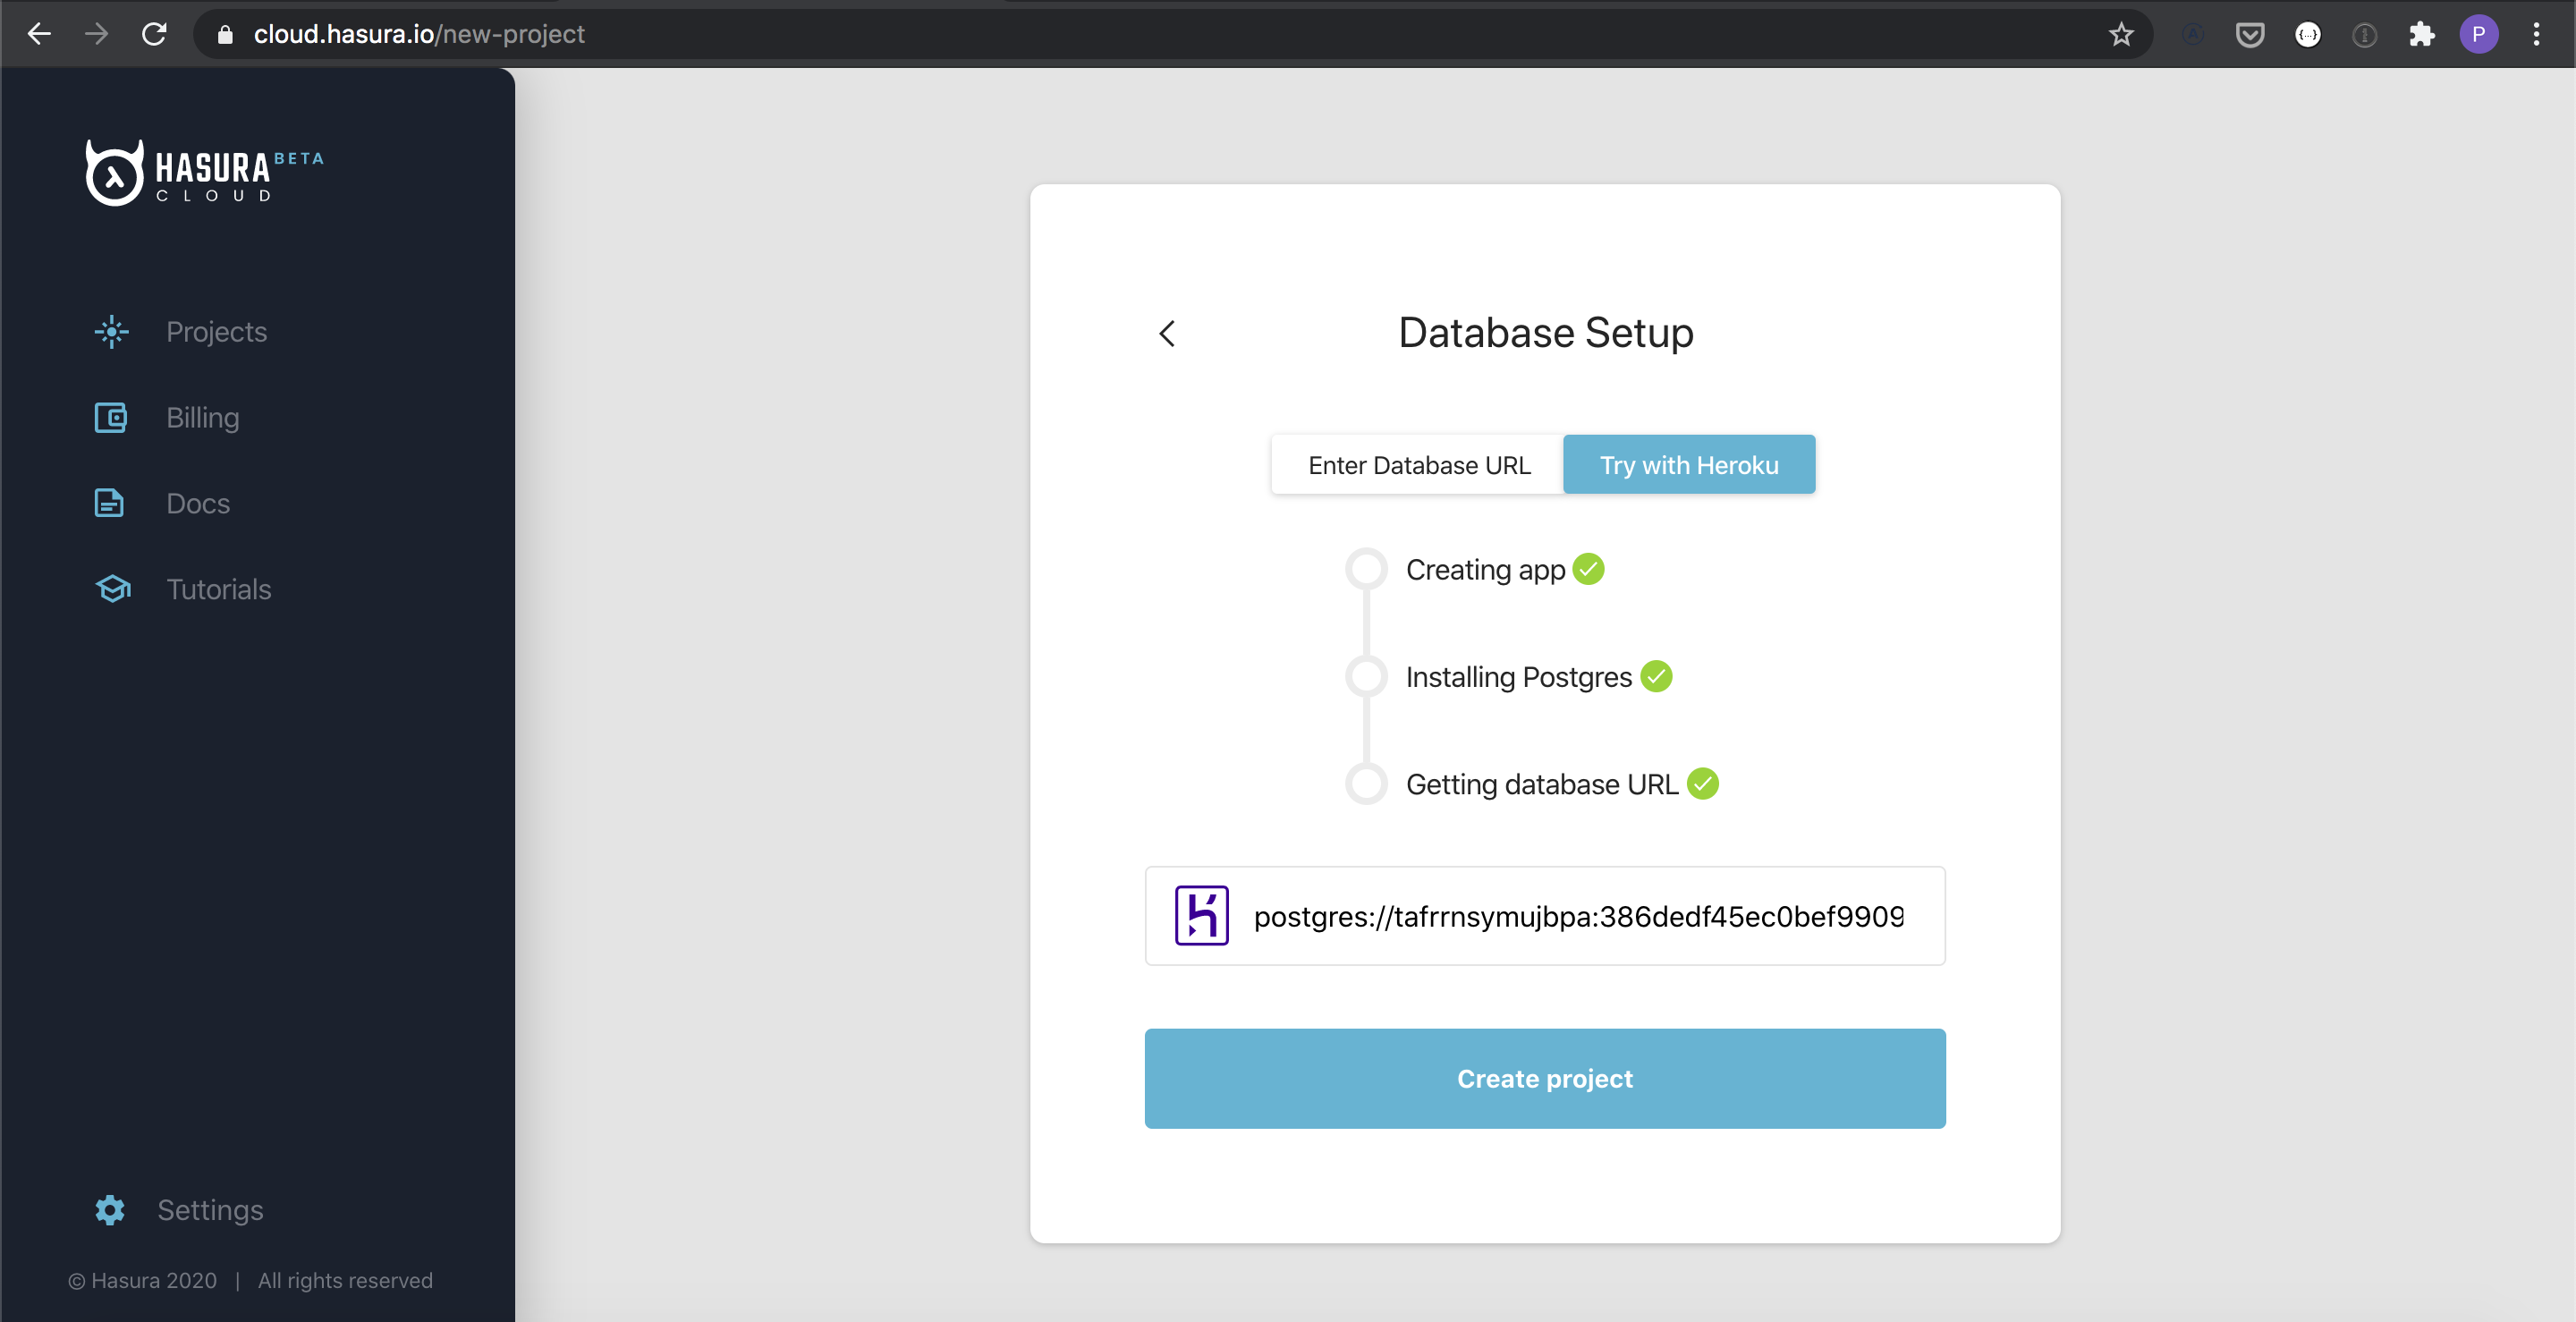 Heroku Database Deployment on Hasura Cloud